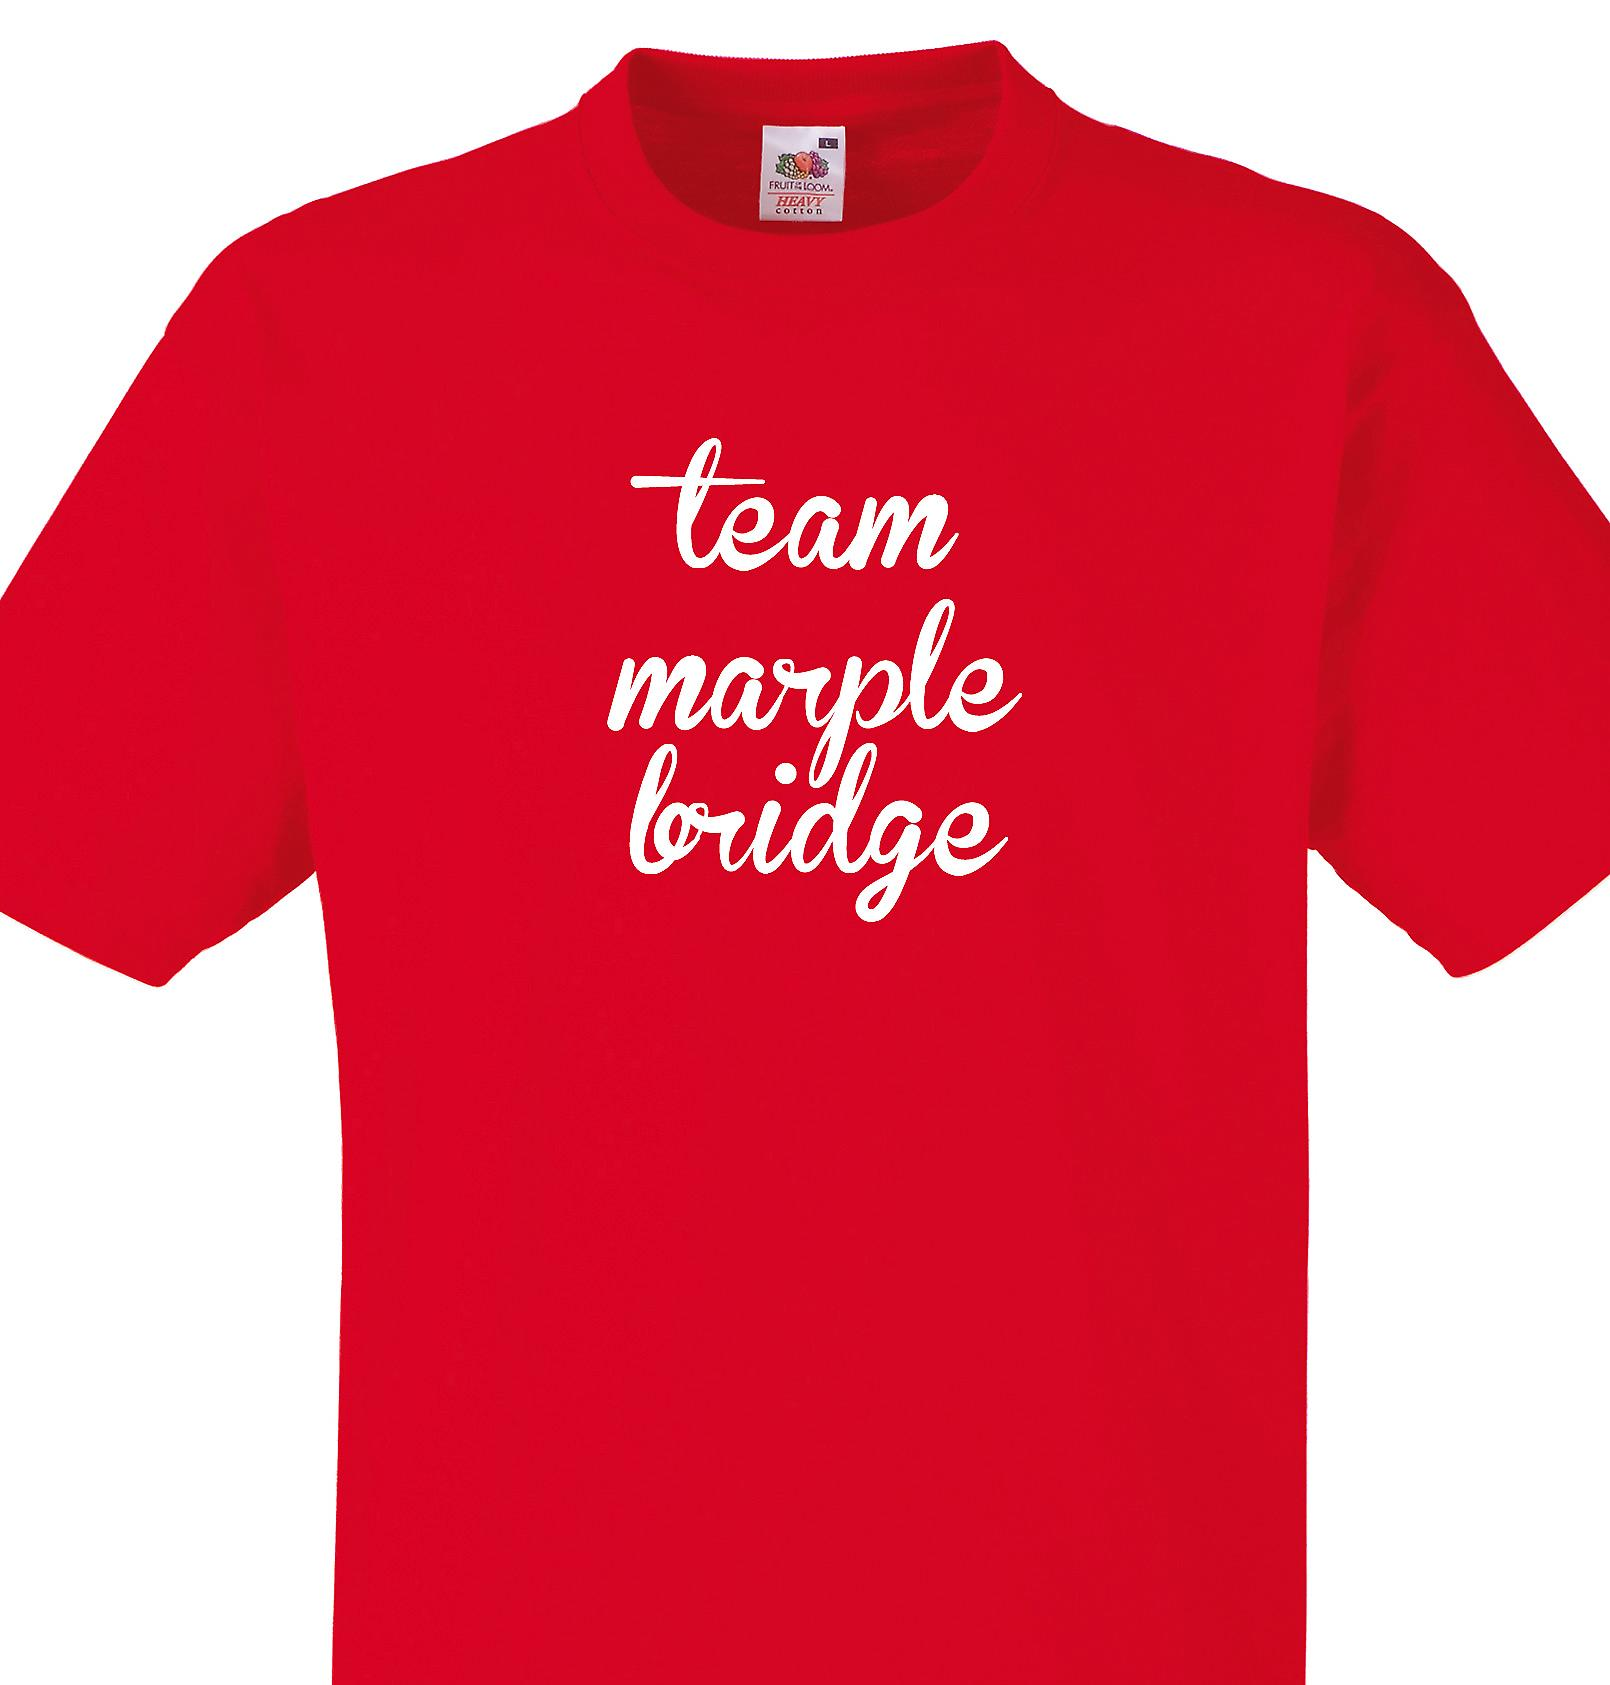 Team Marple bridge Red T shirt